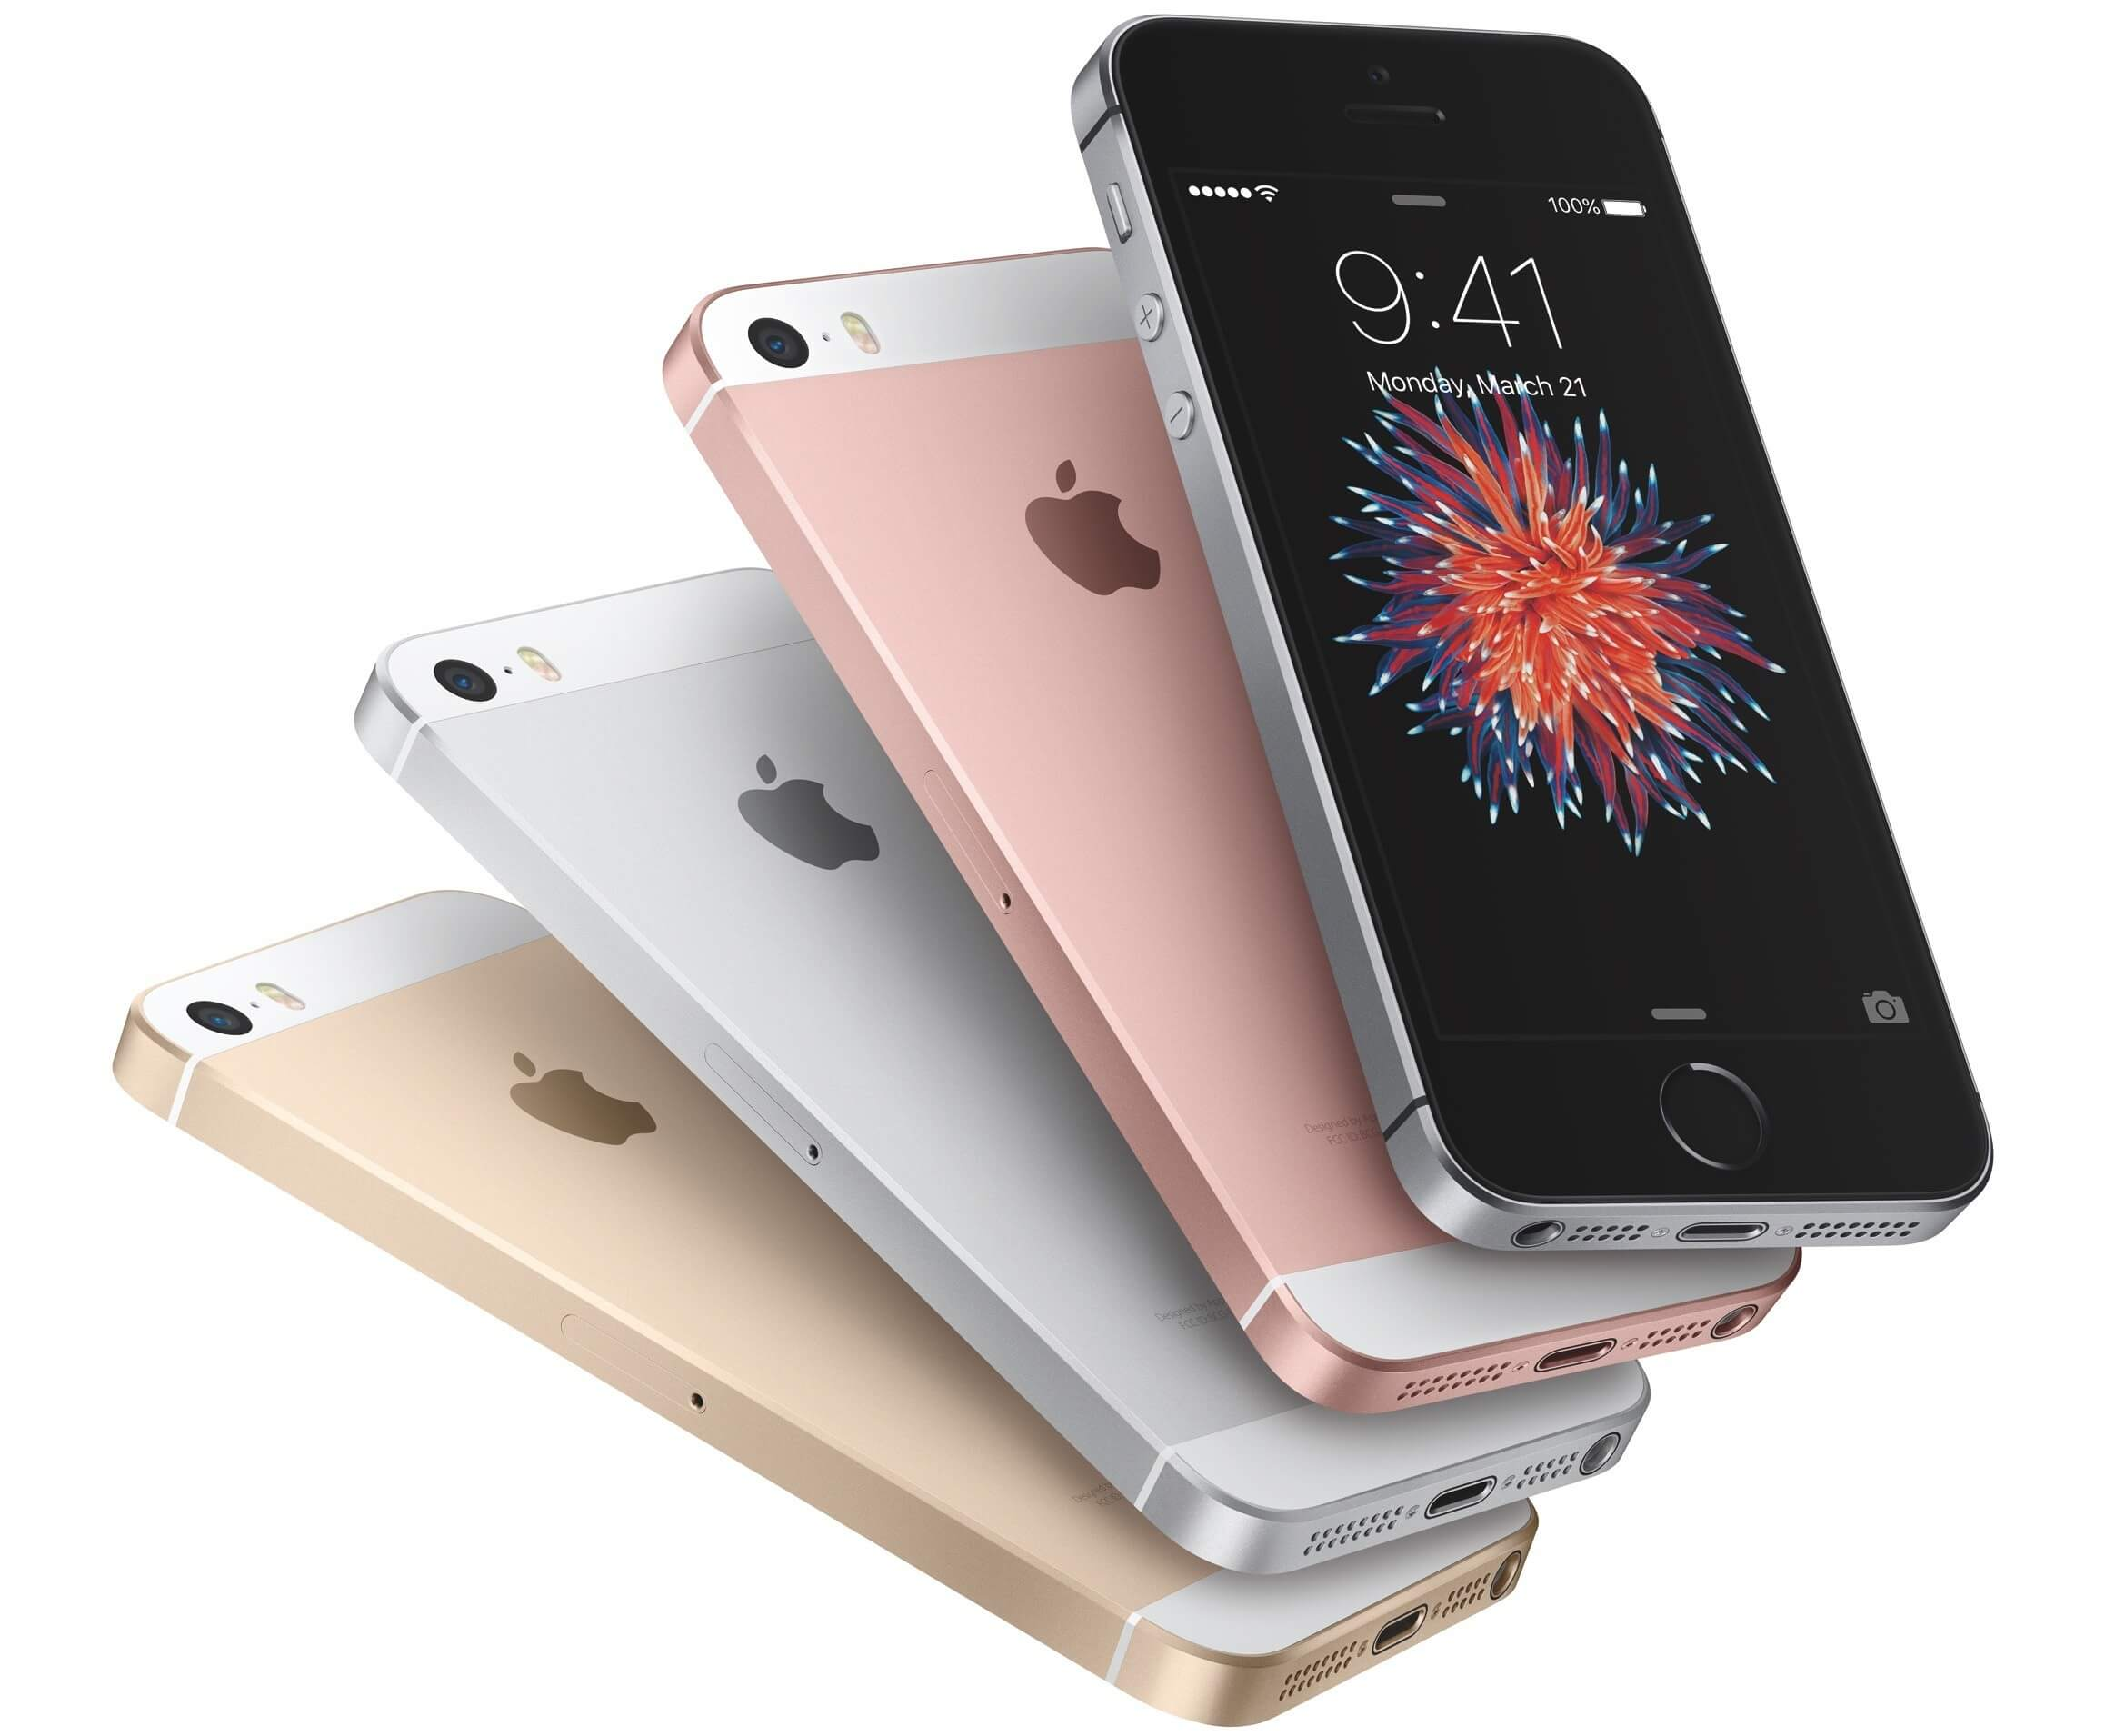 4 iPhones SE in the different colours - gold, silver, rose gold and space grey